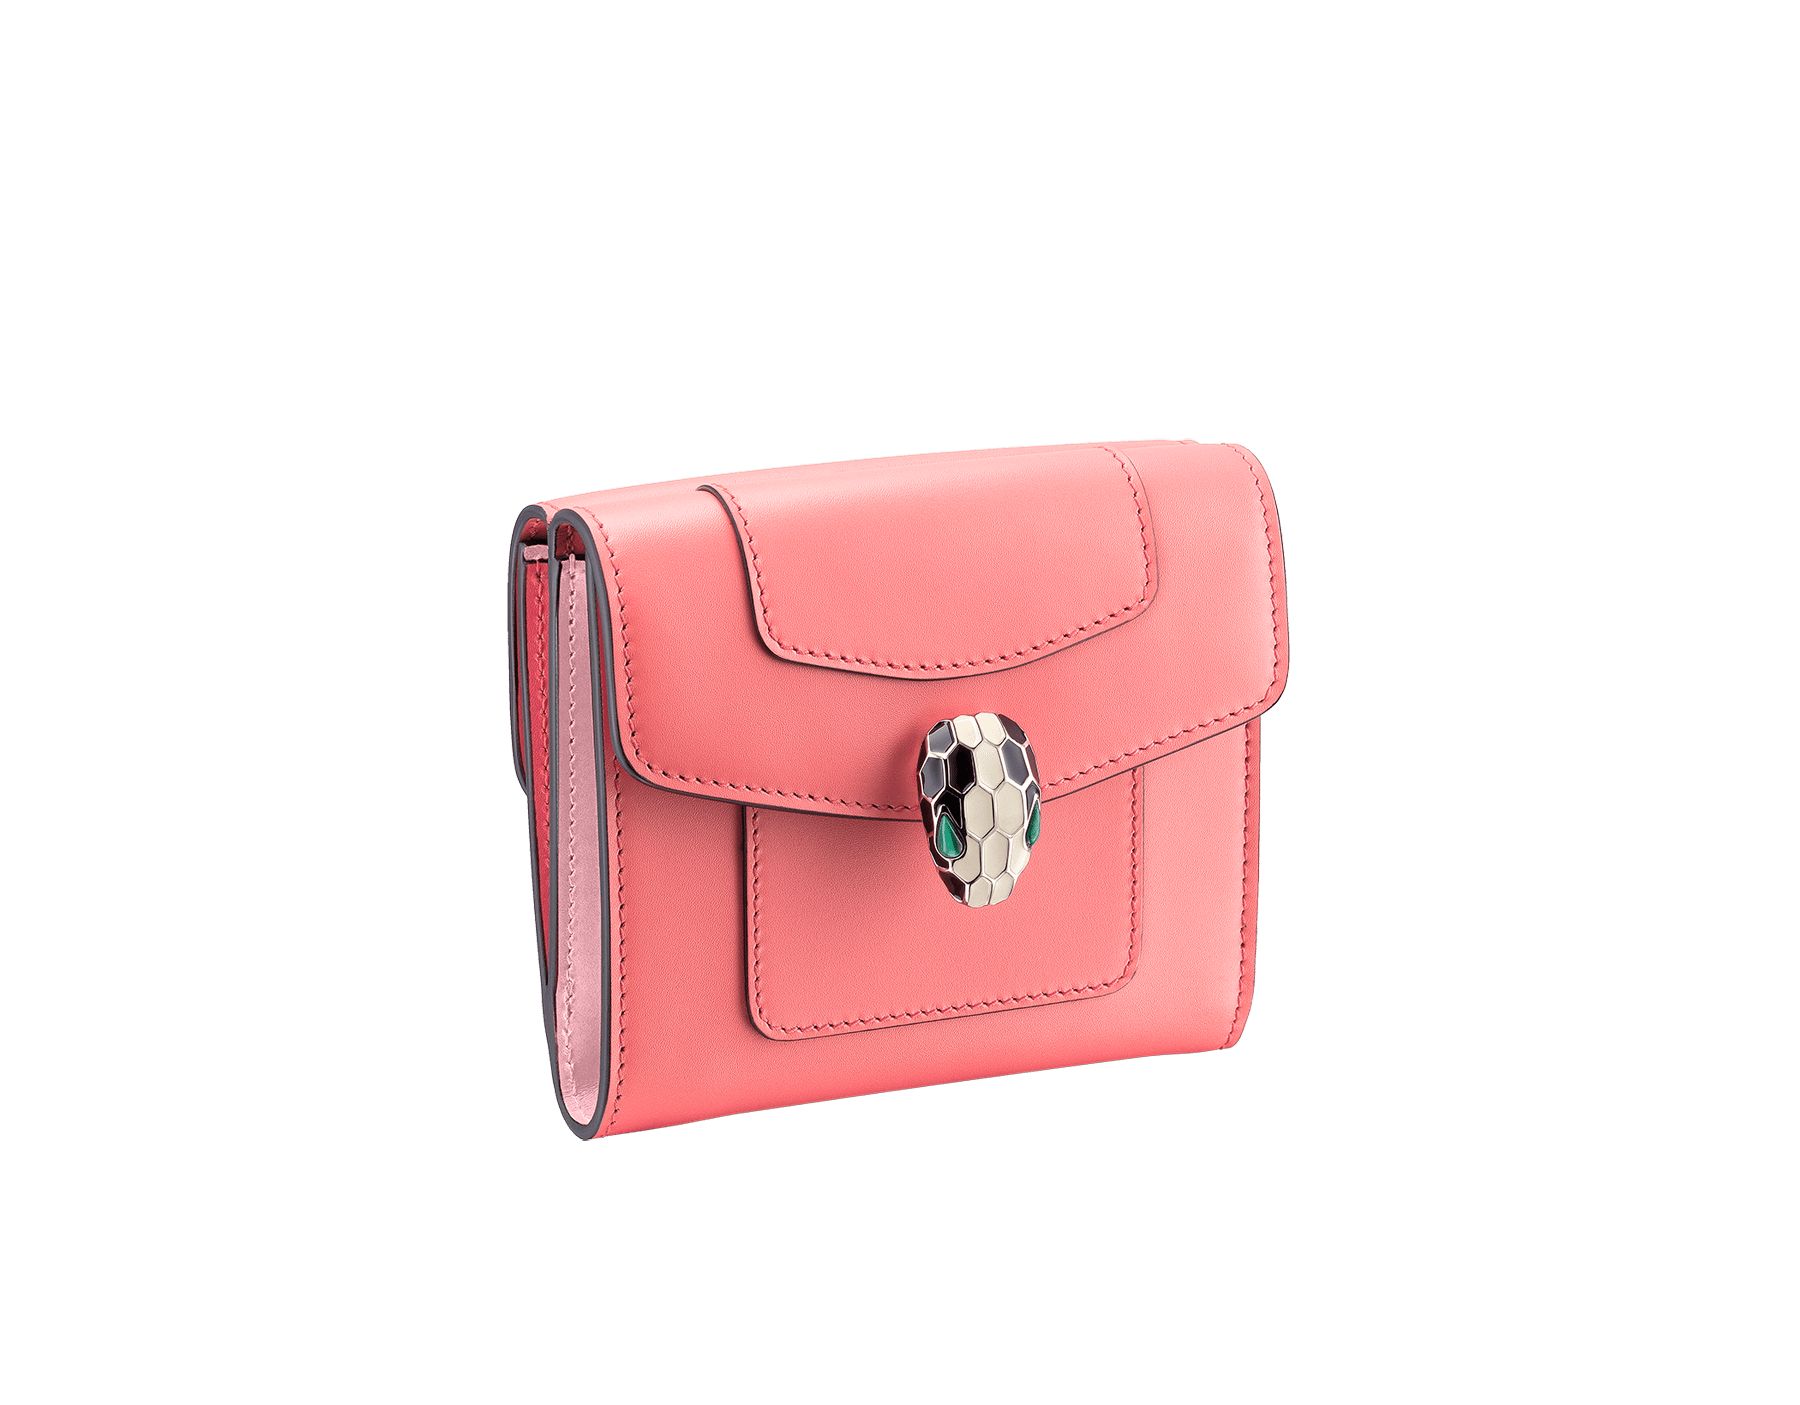 Serpenti Forever square compact wallet in silky coral and flamingo quartz calf leather. Iconic snake head stud closure in black and white enamel, with green malachite eyes. 288834 image 1